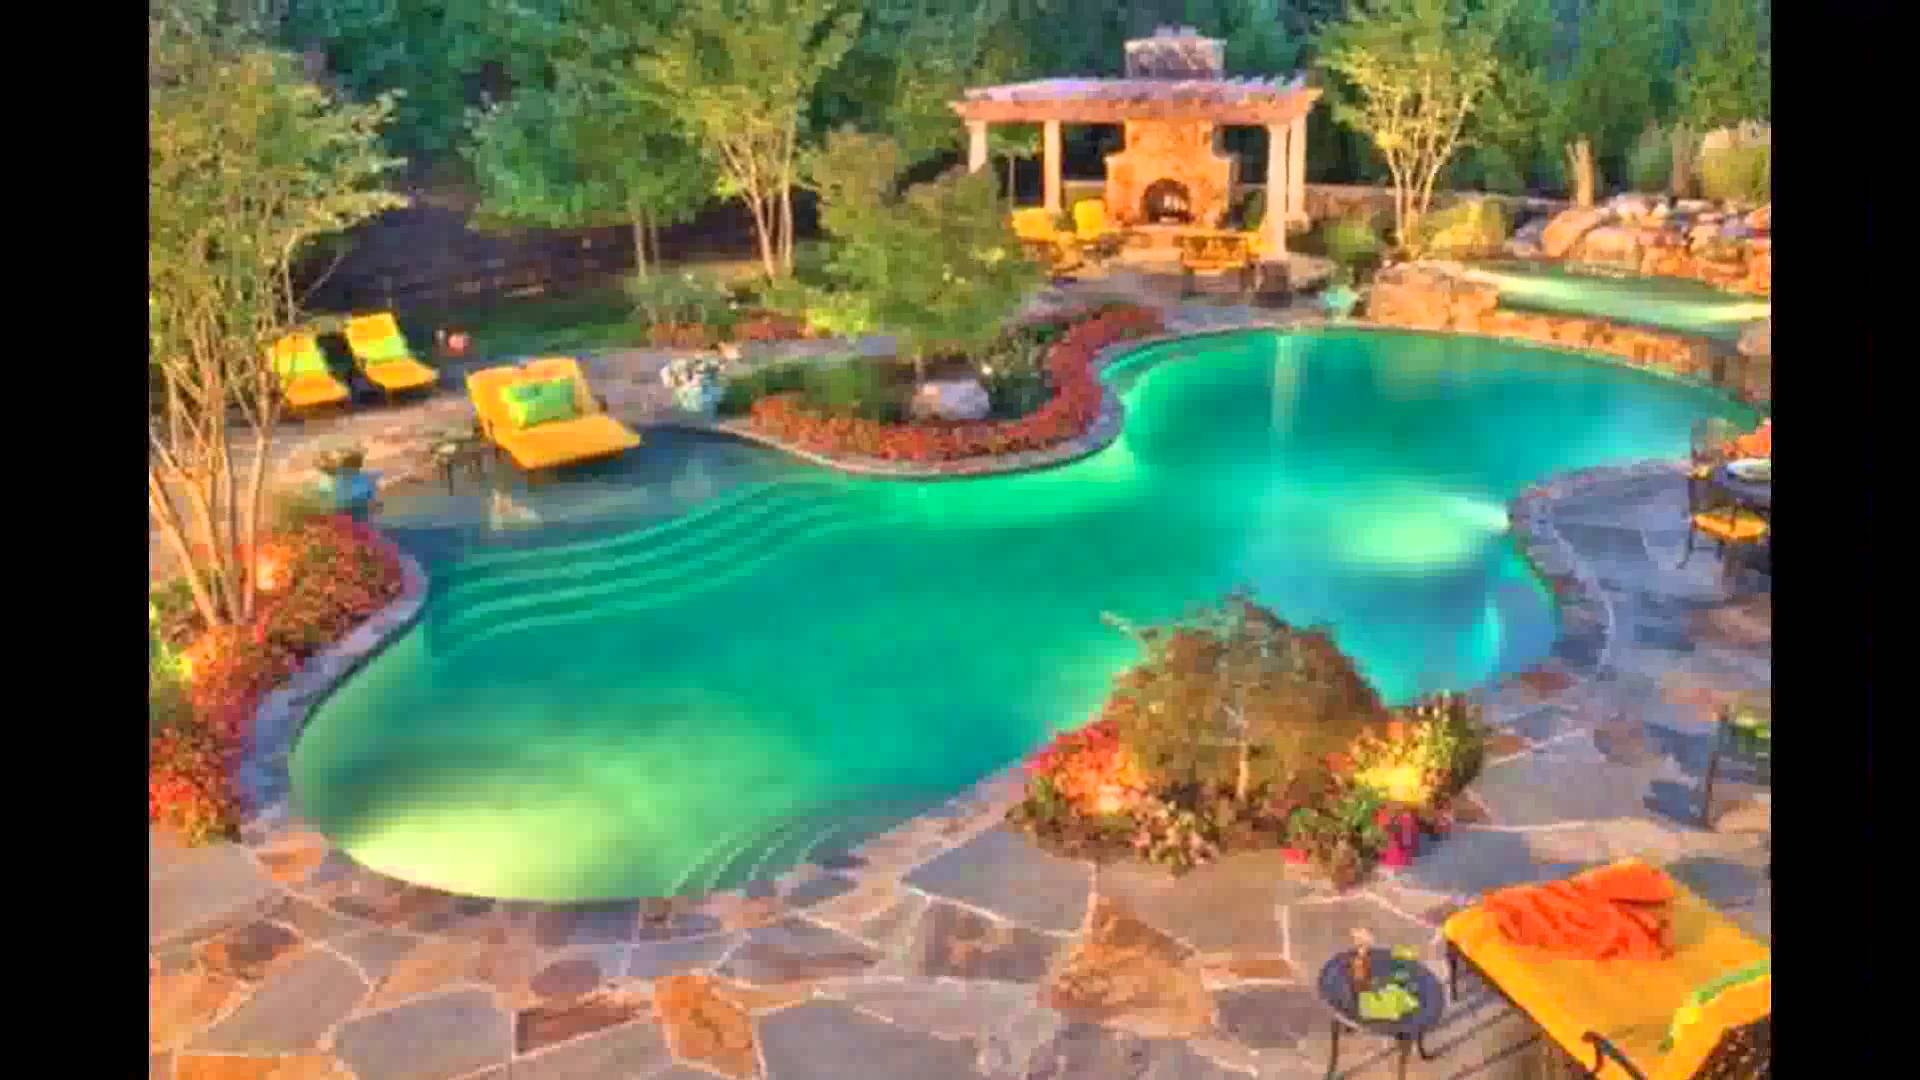 Cool Backyard Pool Designs for Your Outdoor Space: Small Backyards With Pools | Mini Pools For Small Backyards | Backyard Pool Designs